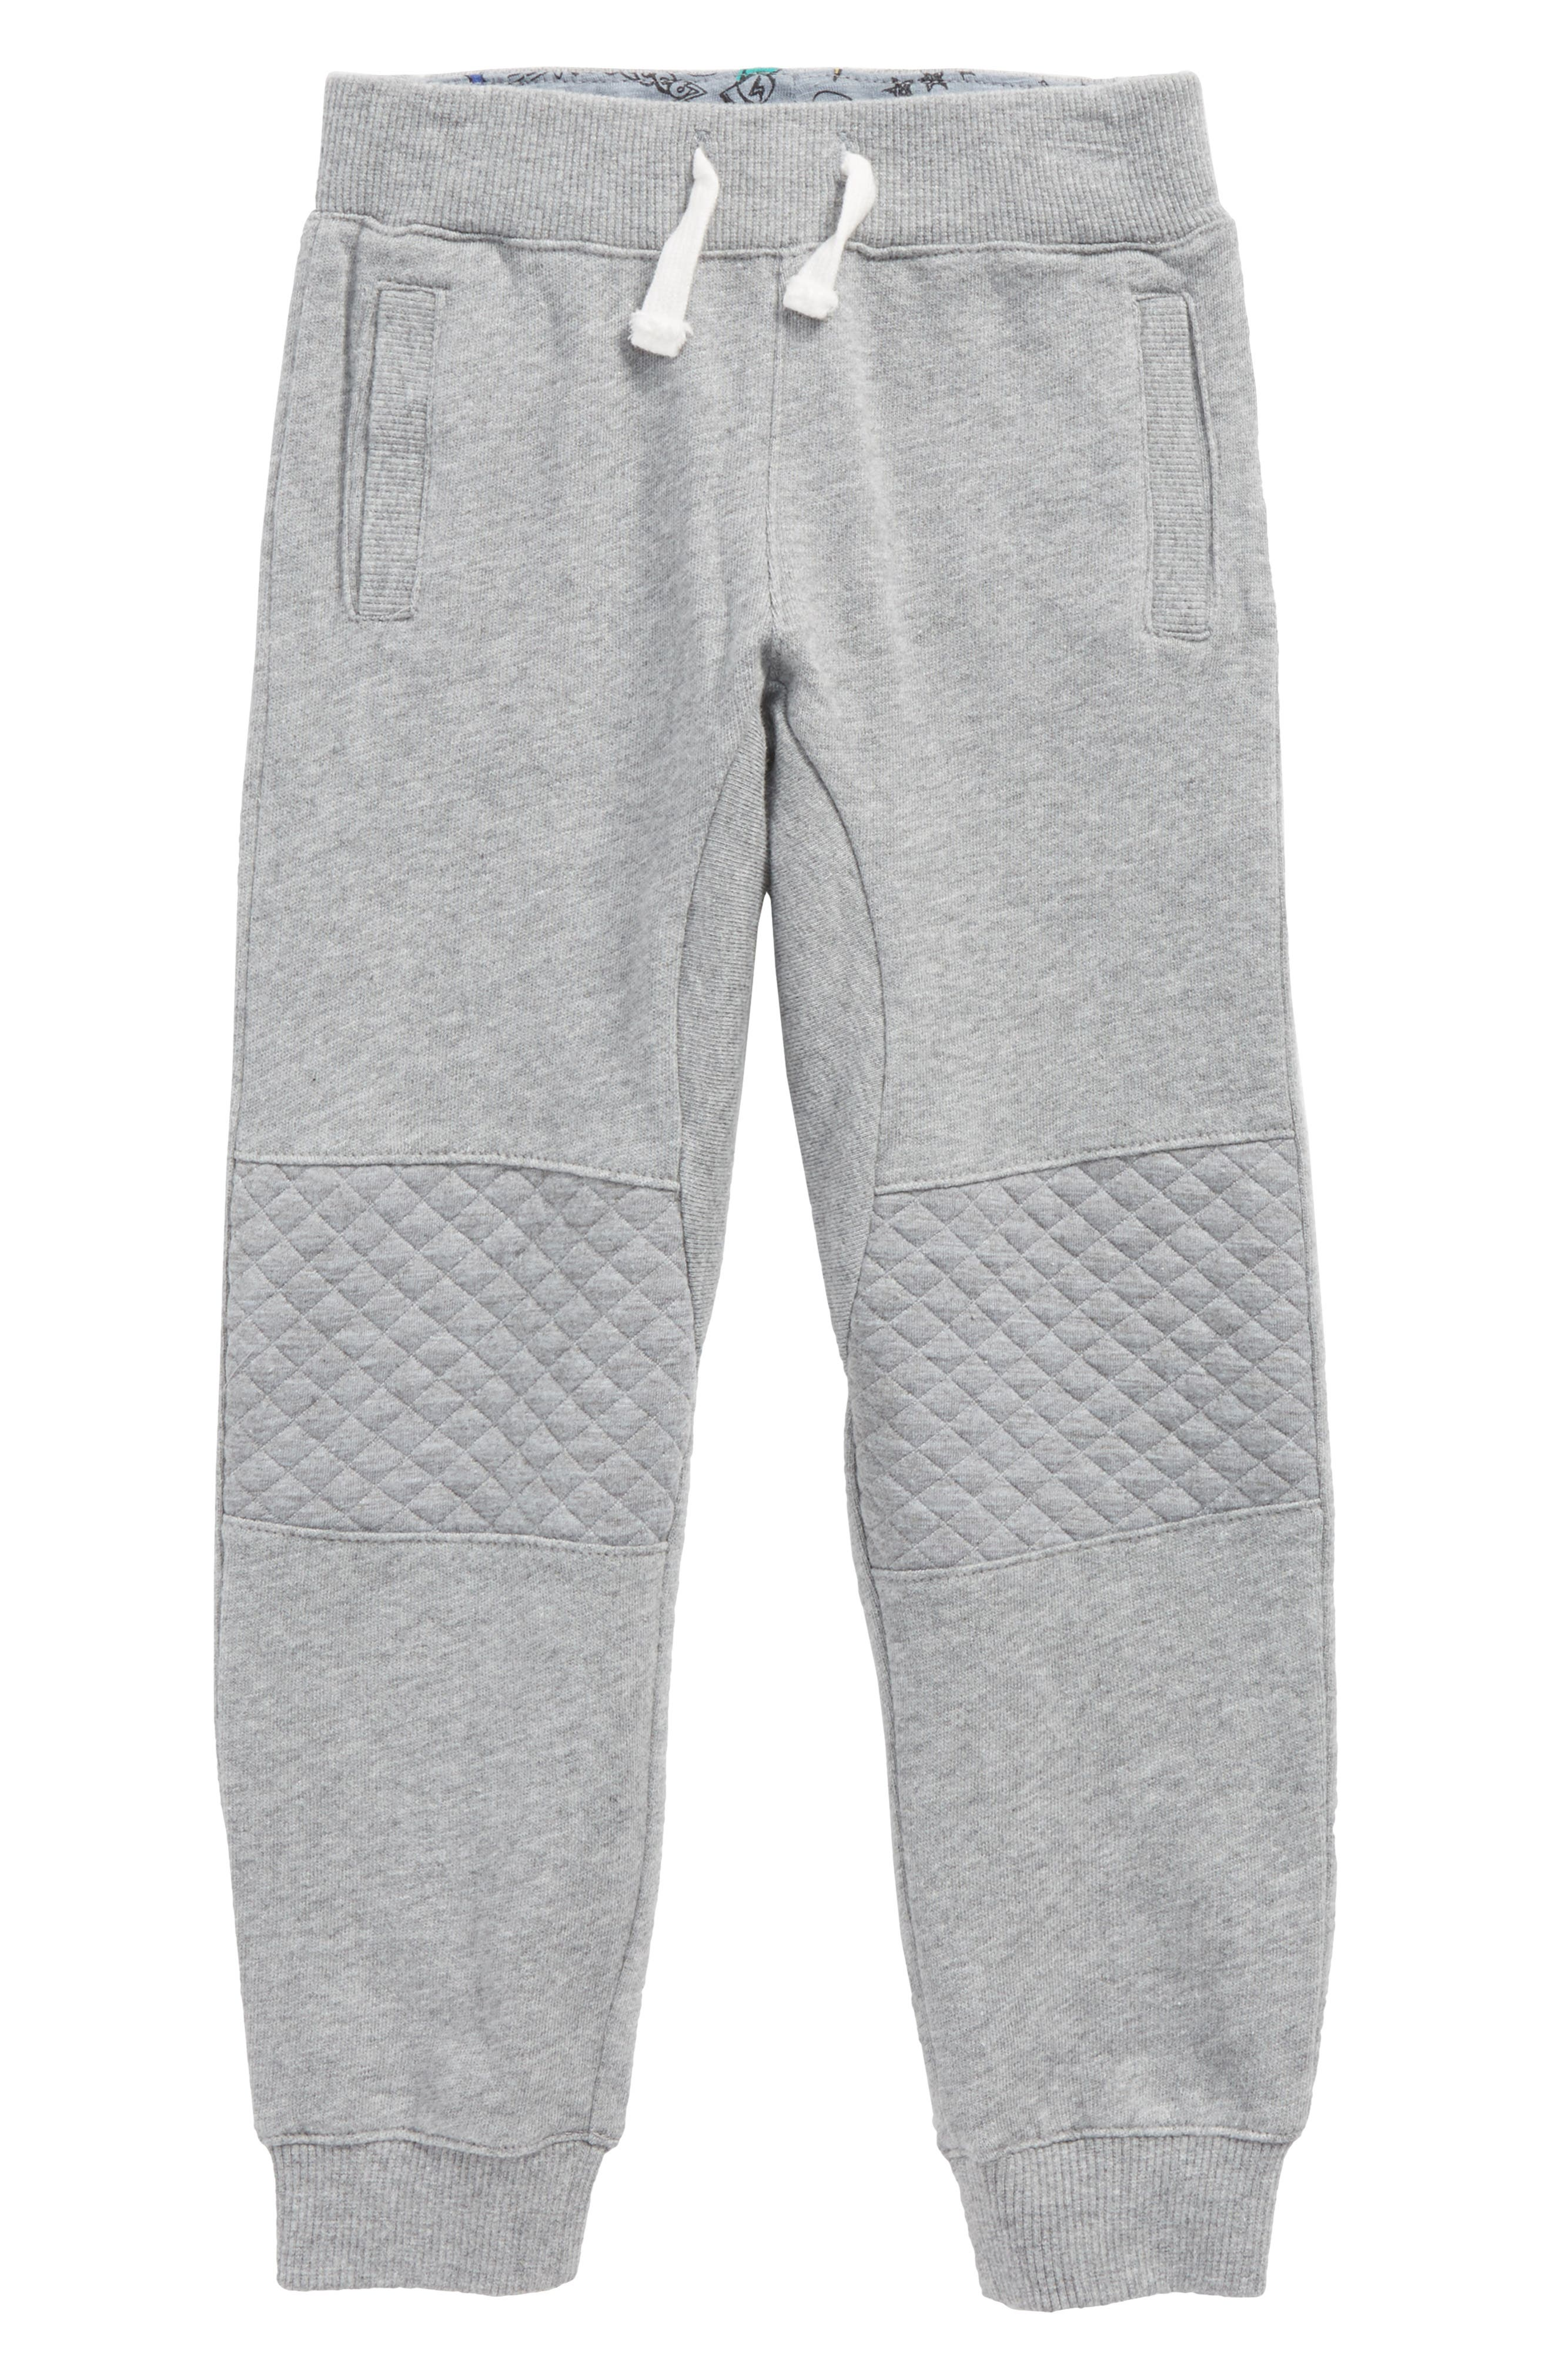 Alternate Image 1 Selected - Splendid Quilted French Terry Jogger Pants (Baby)